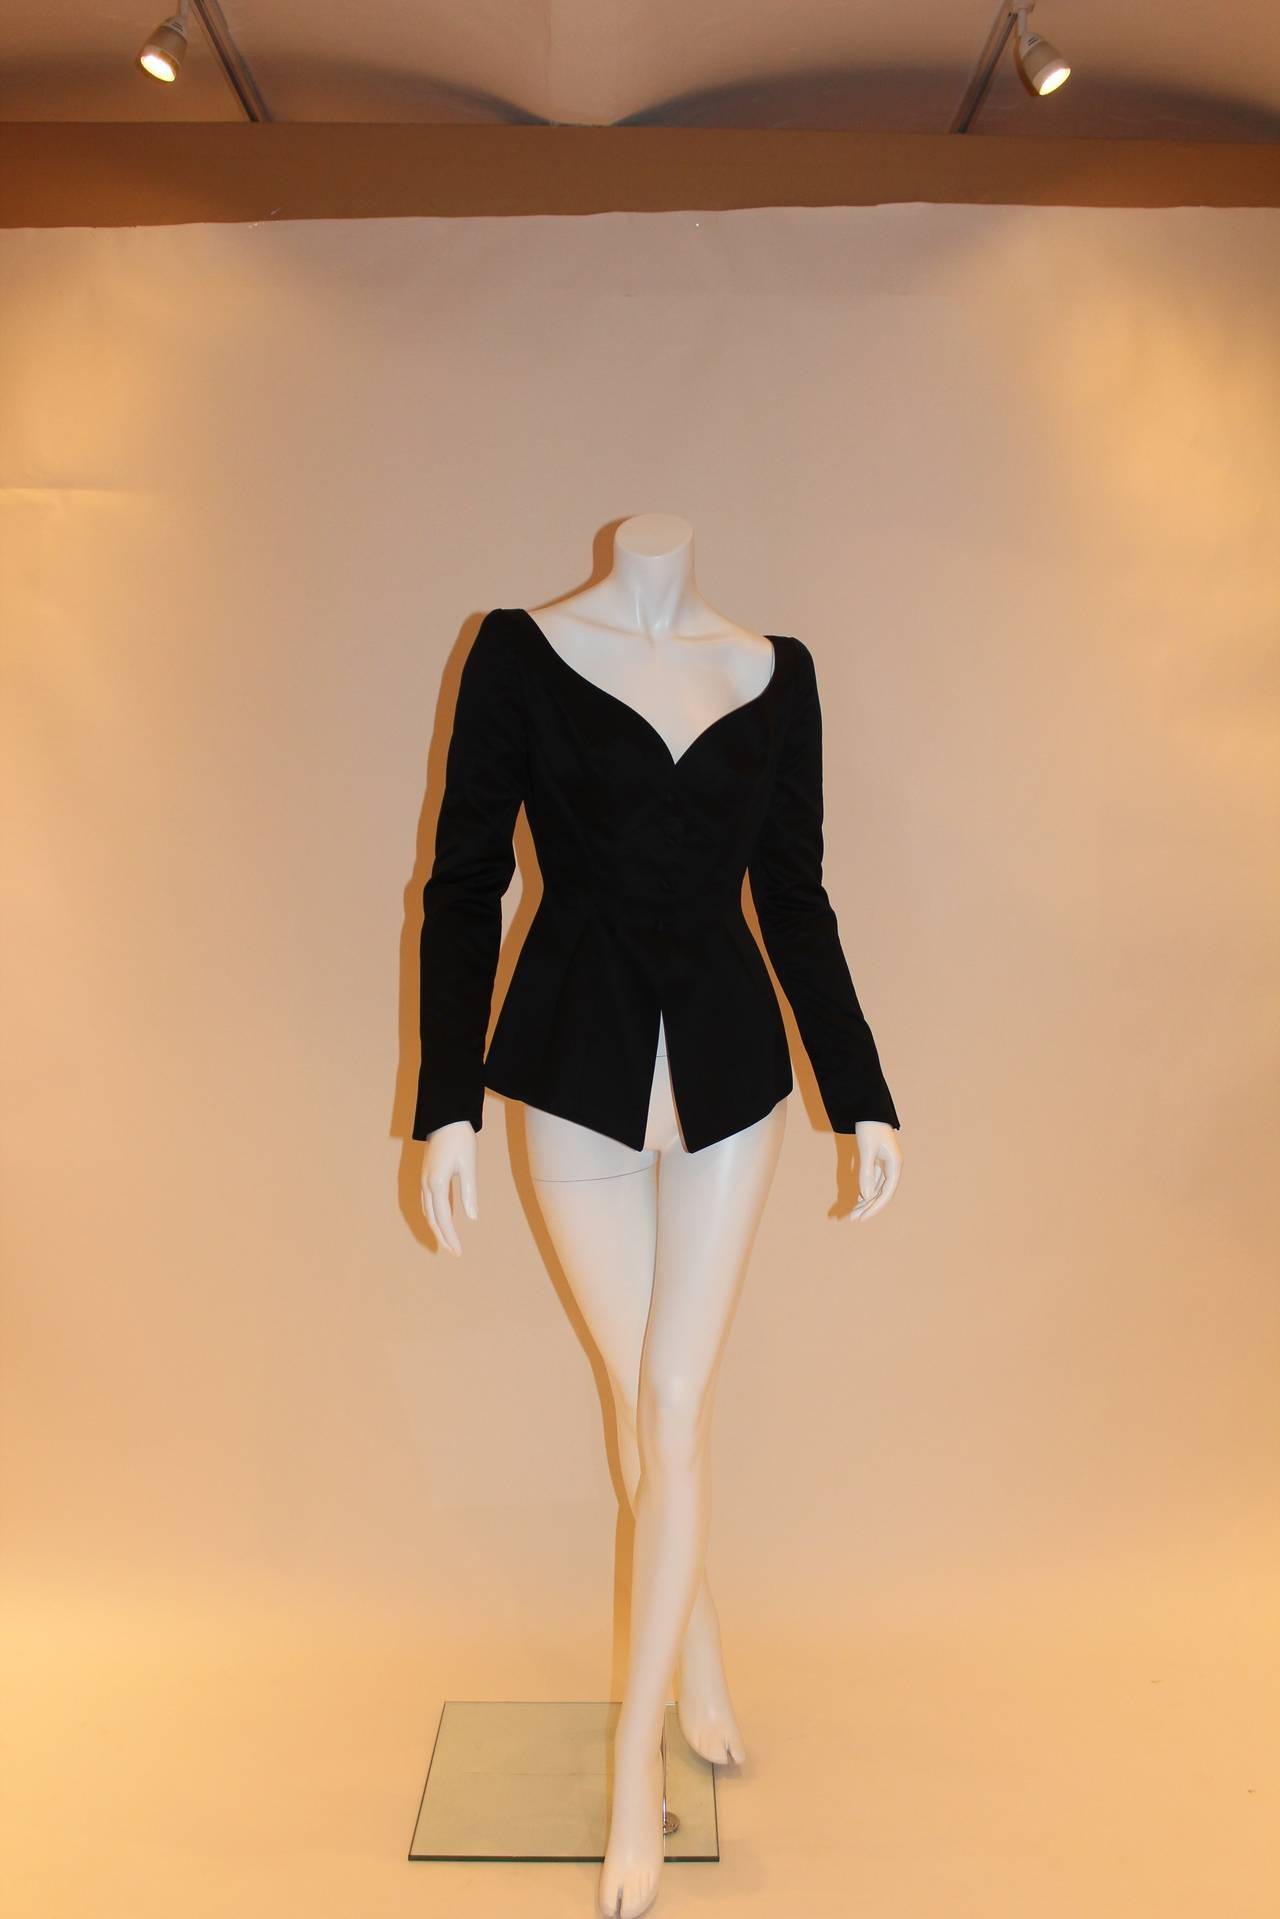 This fabulous Thierry Mugler blazer is a classic piece that can be worn both casually and elegantly. Closes anteriorly with four buttons and contains a wide, complimentary V-neckline that gorgeously accentuates the collarbone and chest.